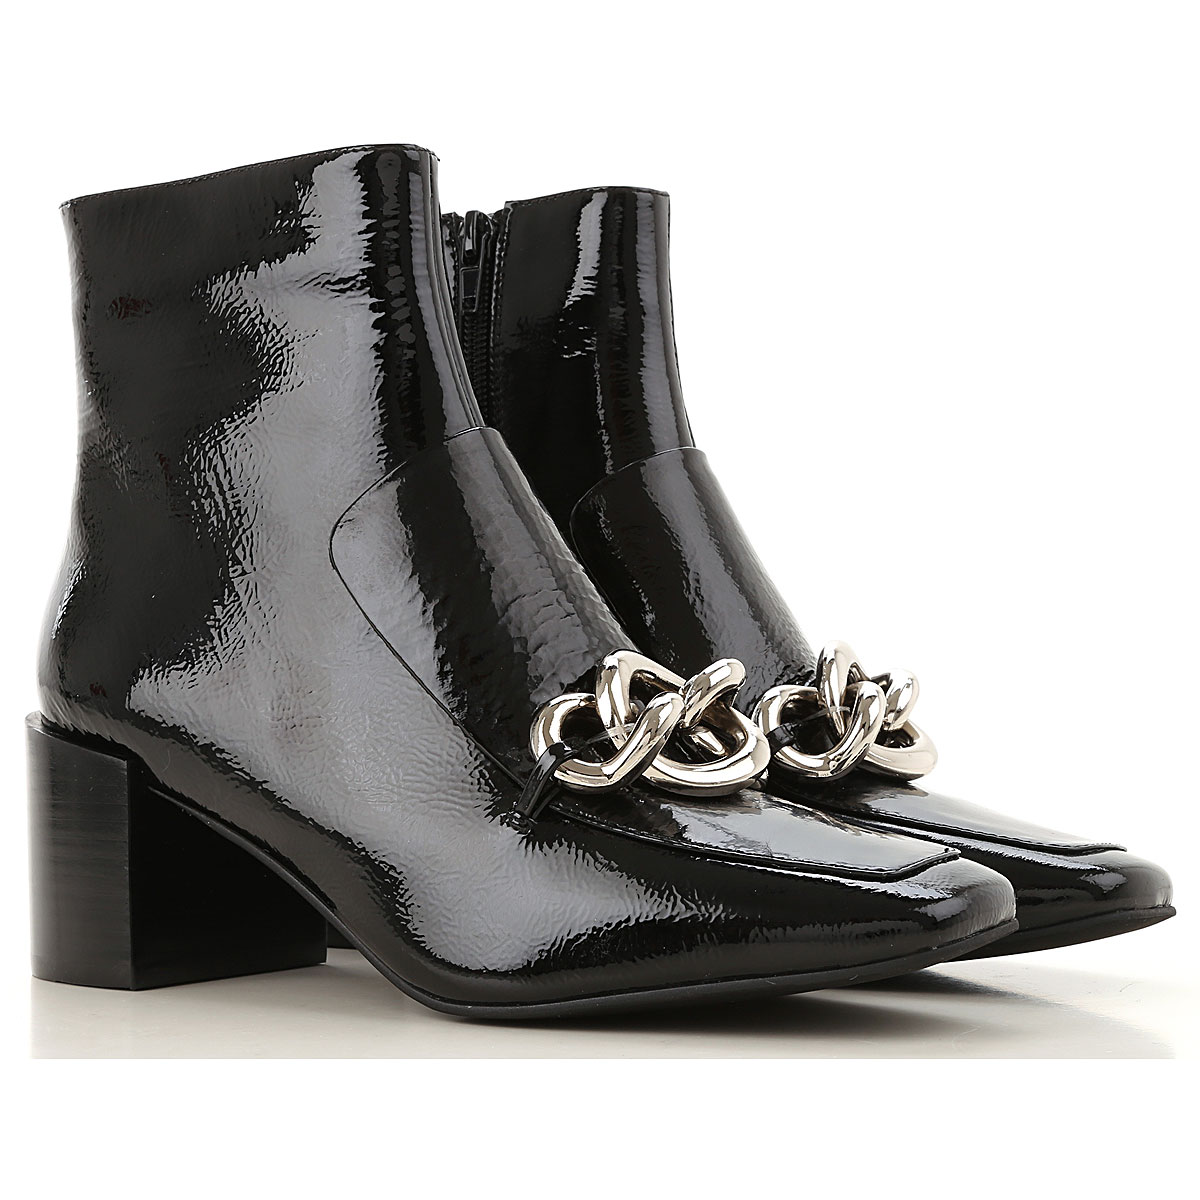 Jeffrey Campbell Boots for Women, Booties On Sale, Black, Patent Leather, 2019, 5 6 7 8 9